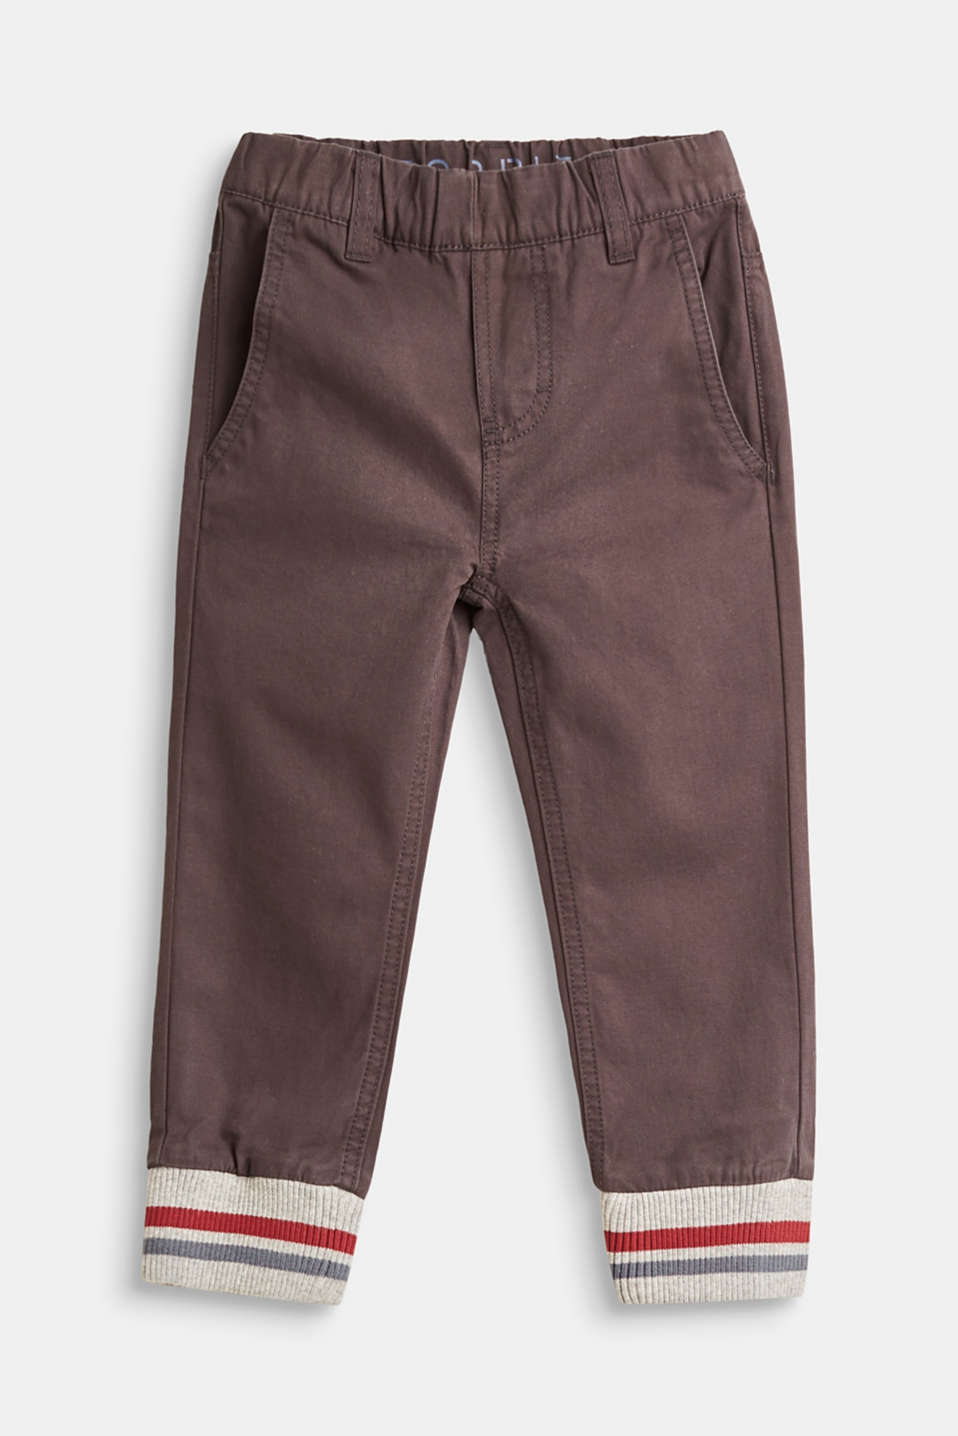 Esprit - Cotton trousers with rib knit cuffs